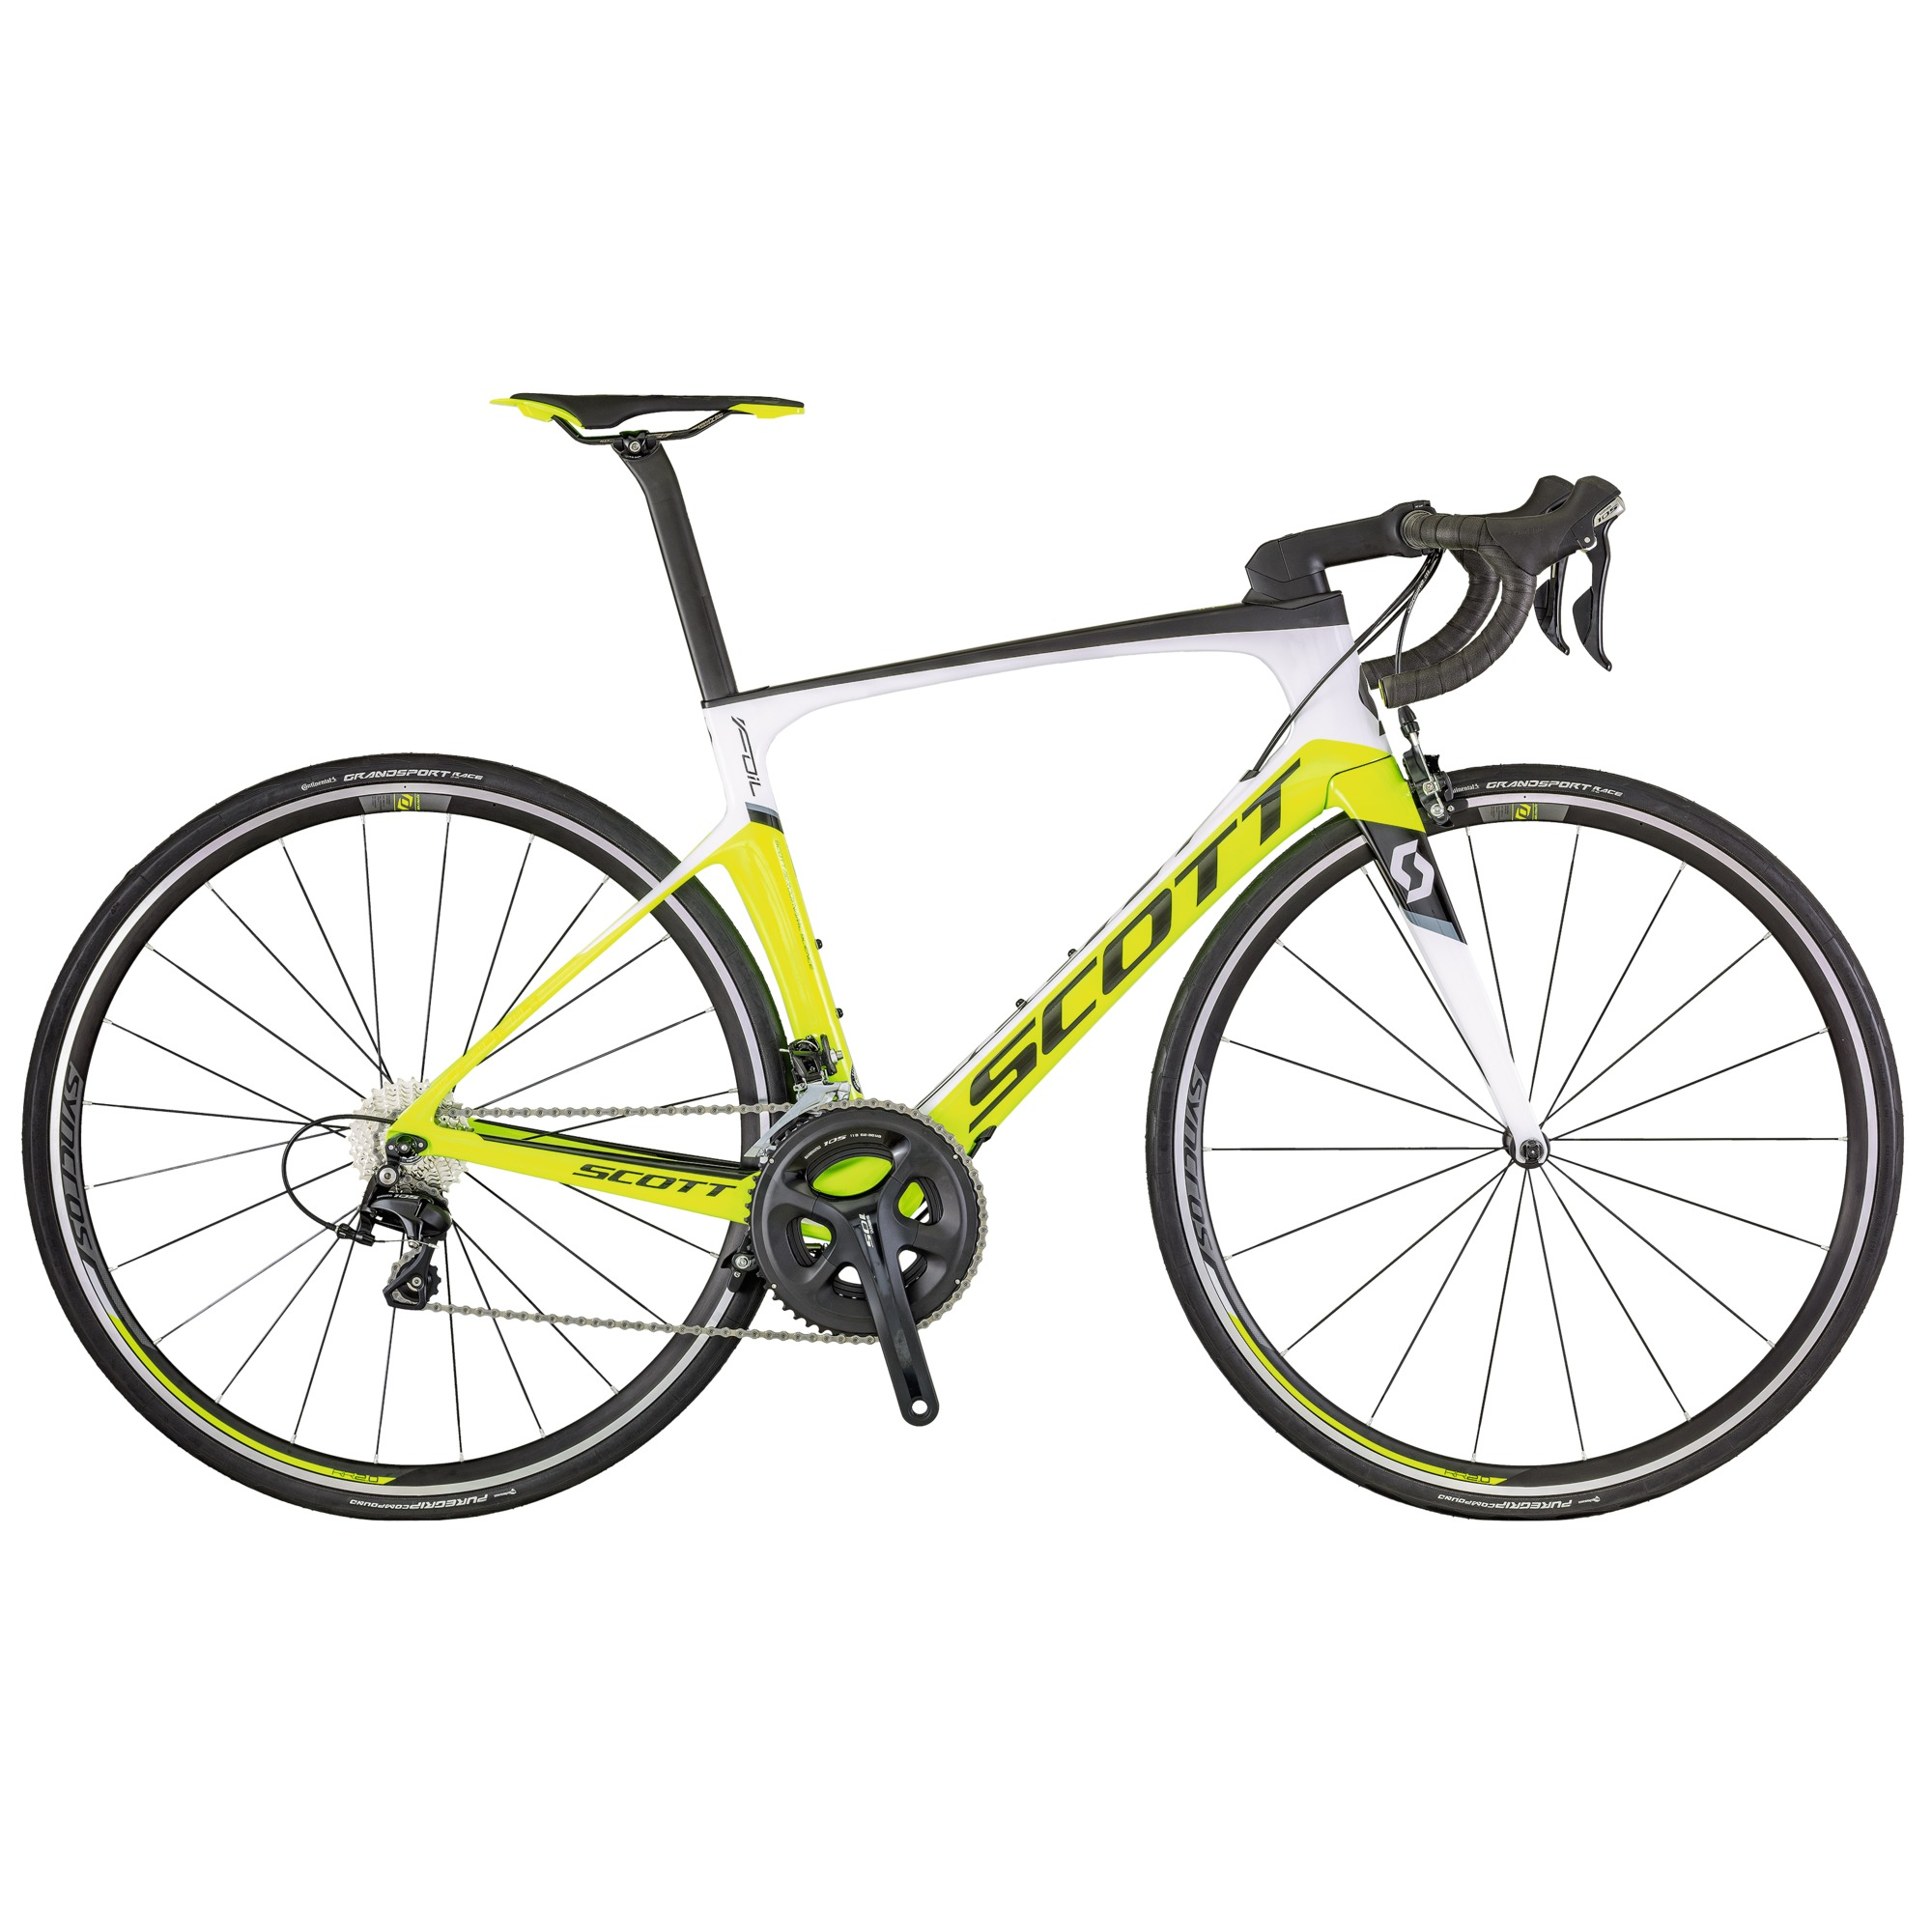 SCOTT Foil 30 Bike XL58 - Zweirad Homann